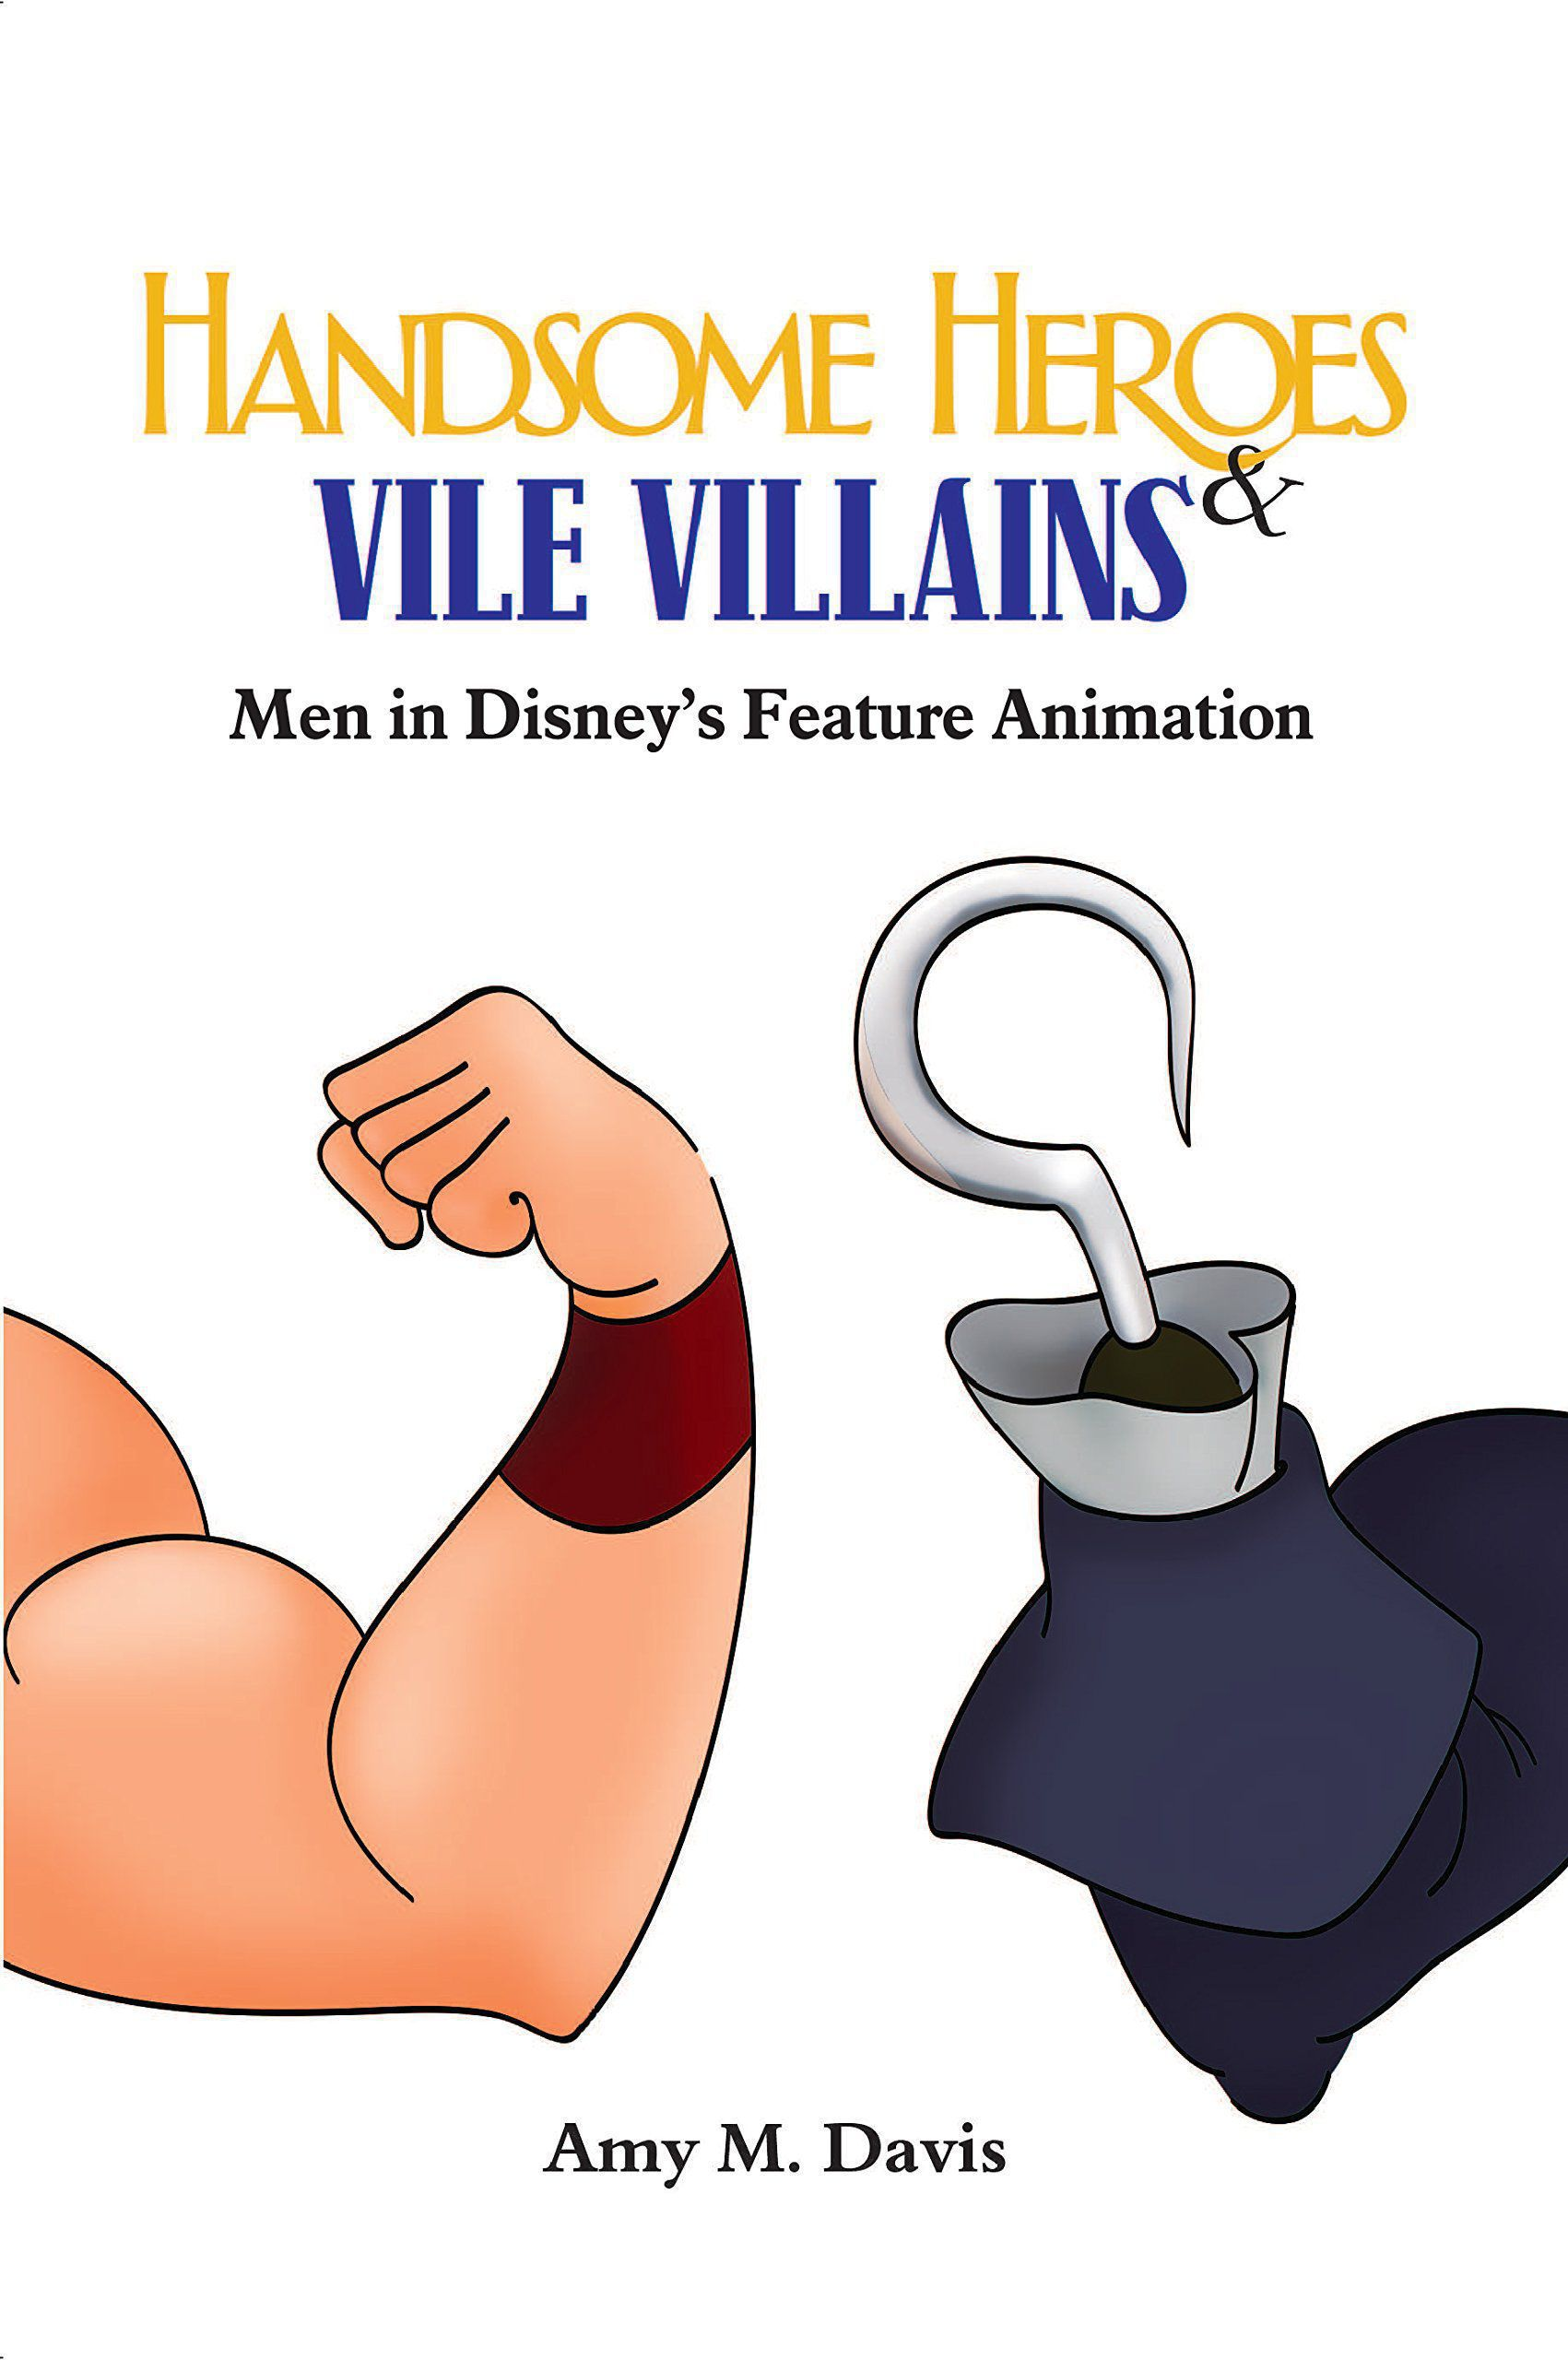 Review: Amy M. Davis's Handsome Heroes and Vile Villains: Men in Disney's Feature Animation